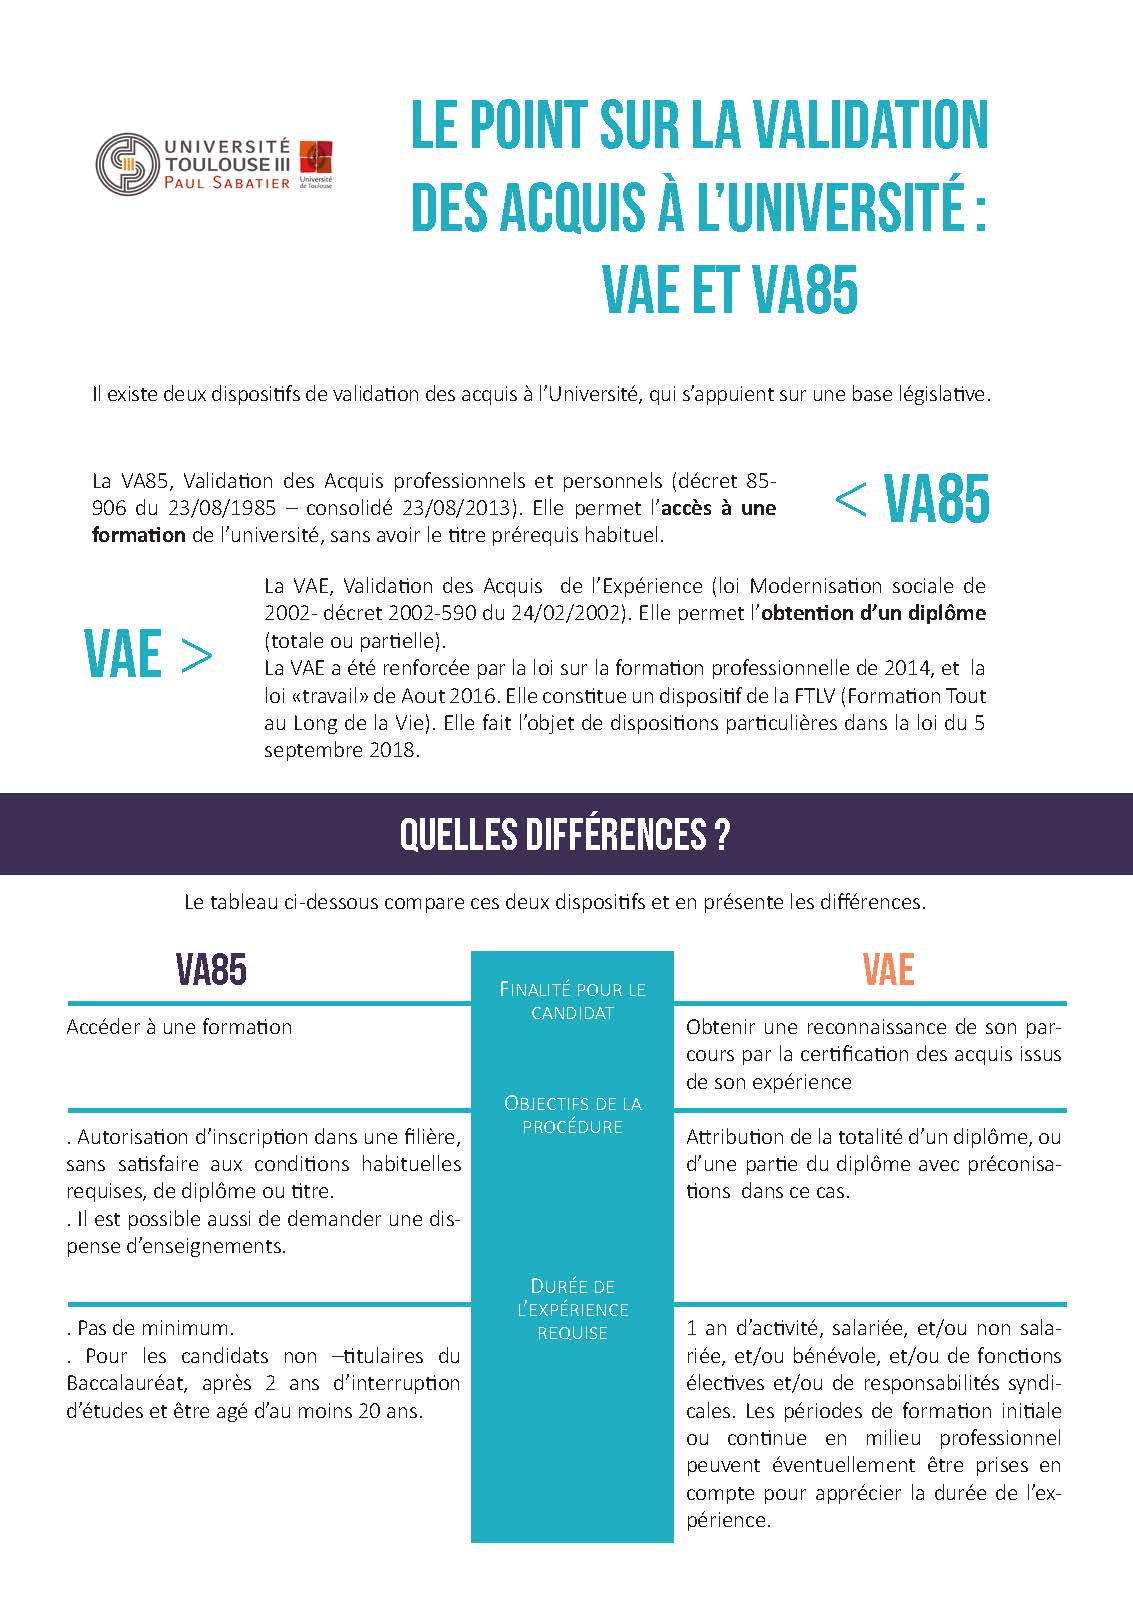 fiche comparative VAE 1